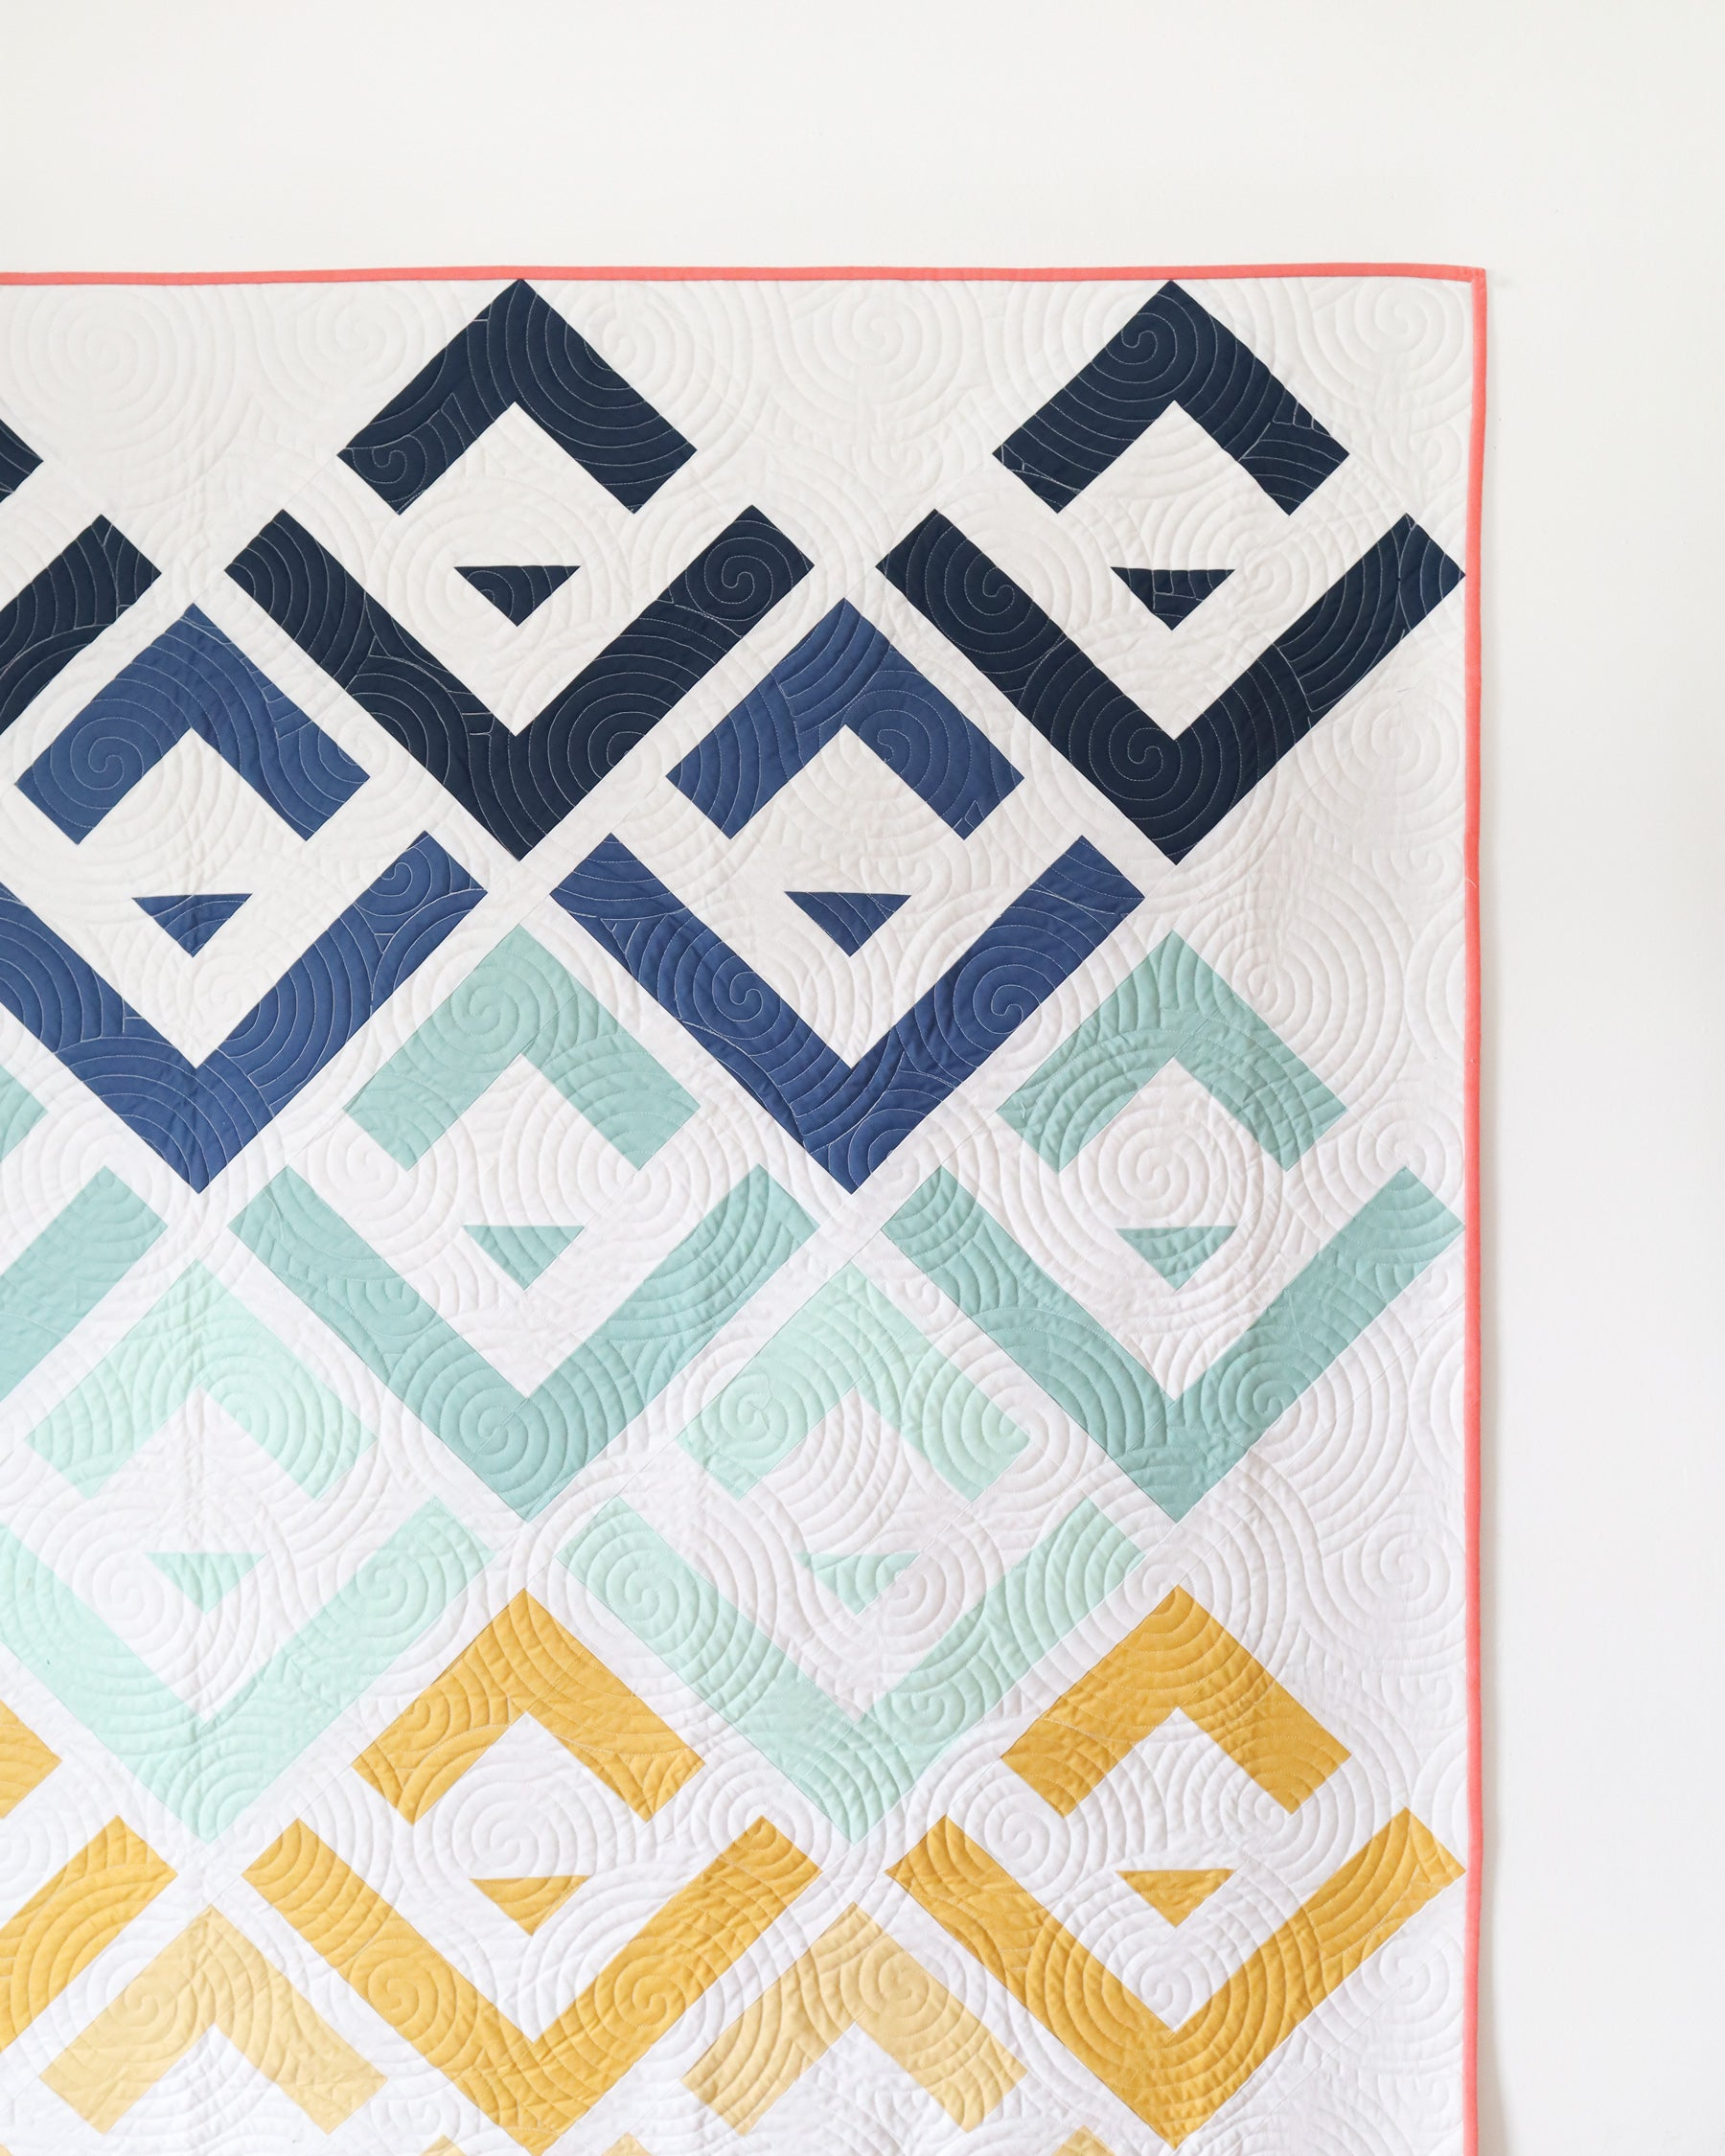 Cabin Valley quilt pattern by Cotton and Joy